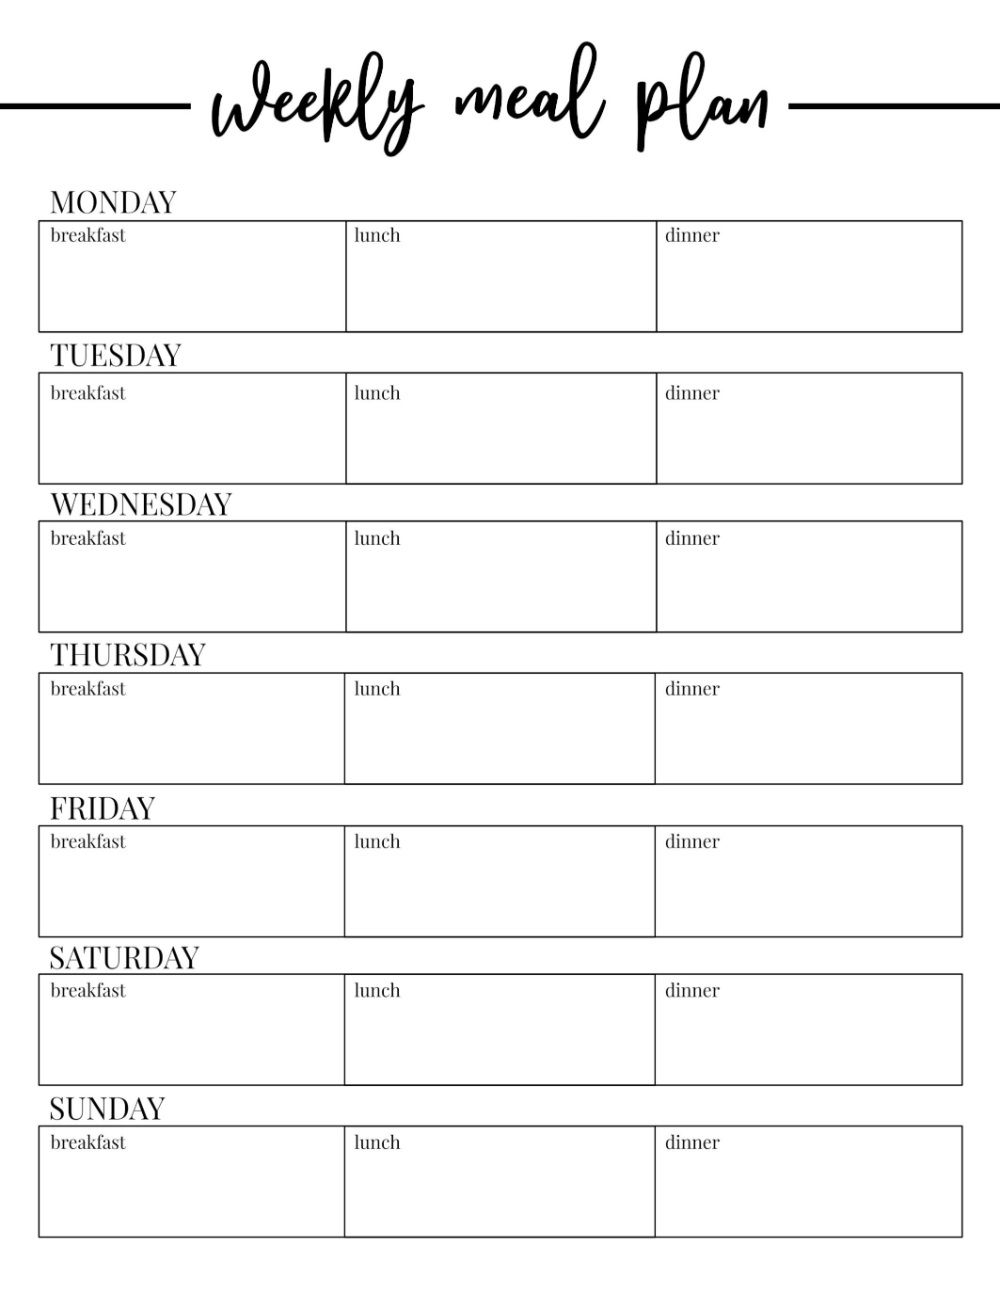 001 Fearsome Free Meal Plan Template Design  Templates Easy Keto Printable Planner For Weight LosFull